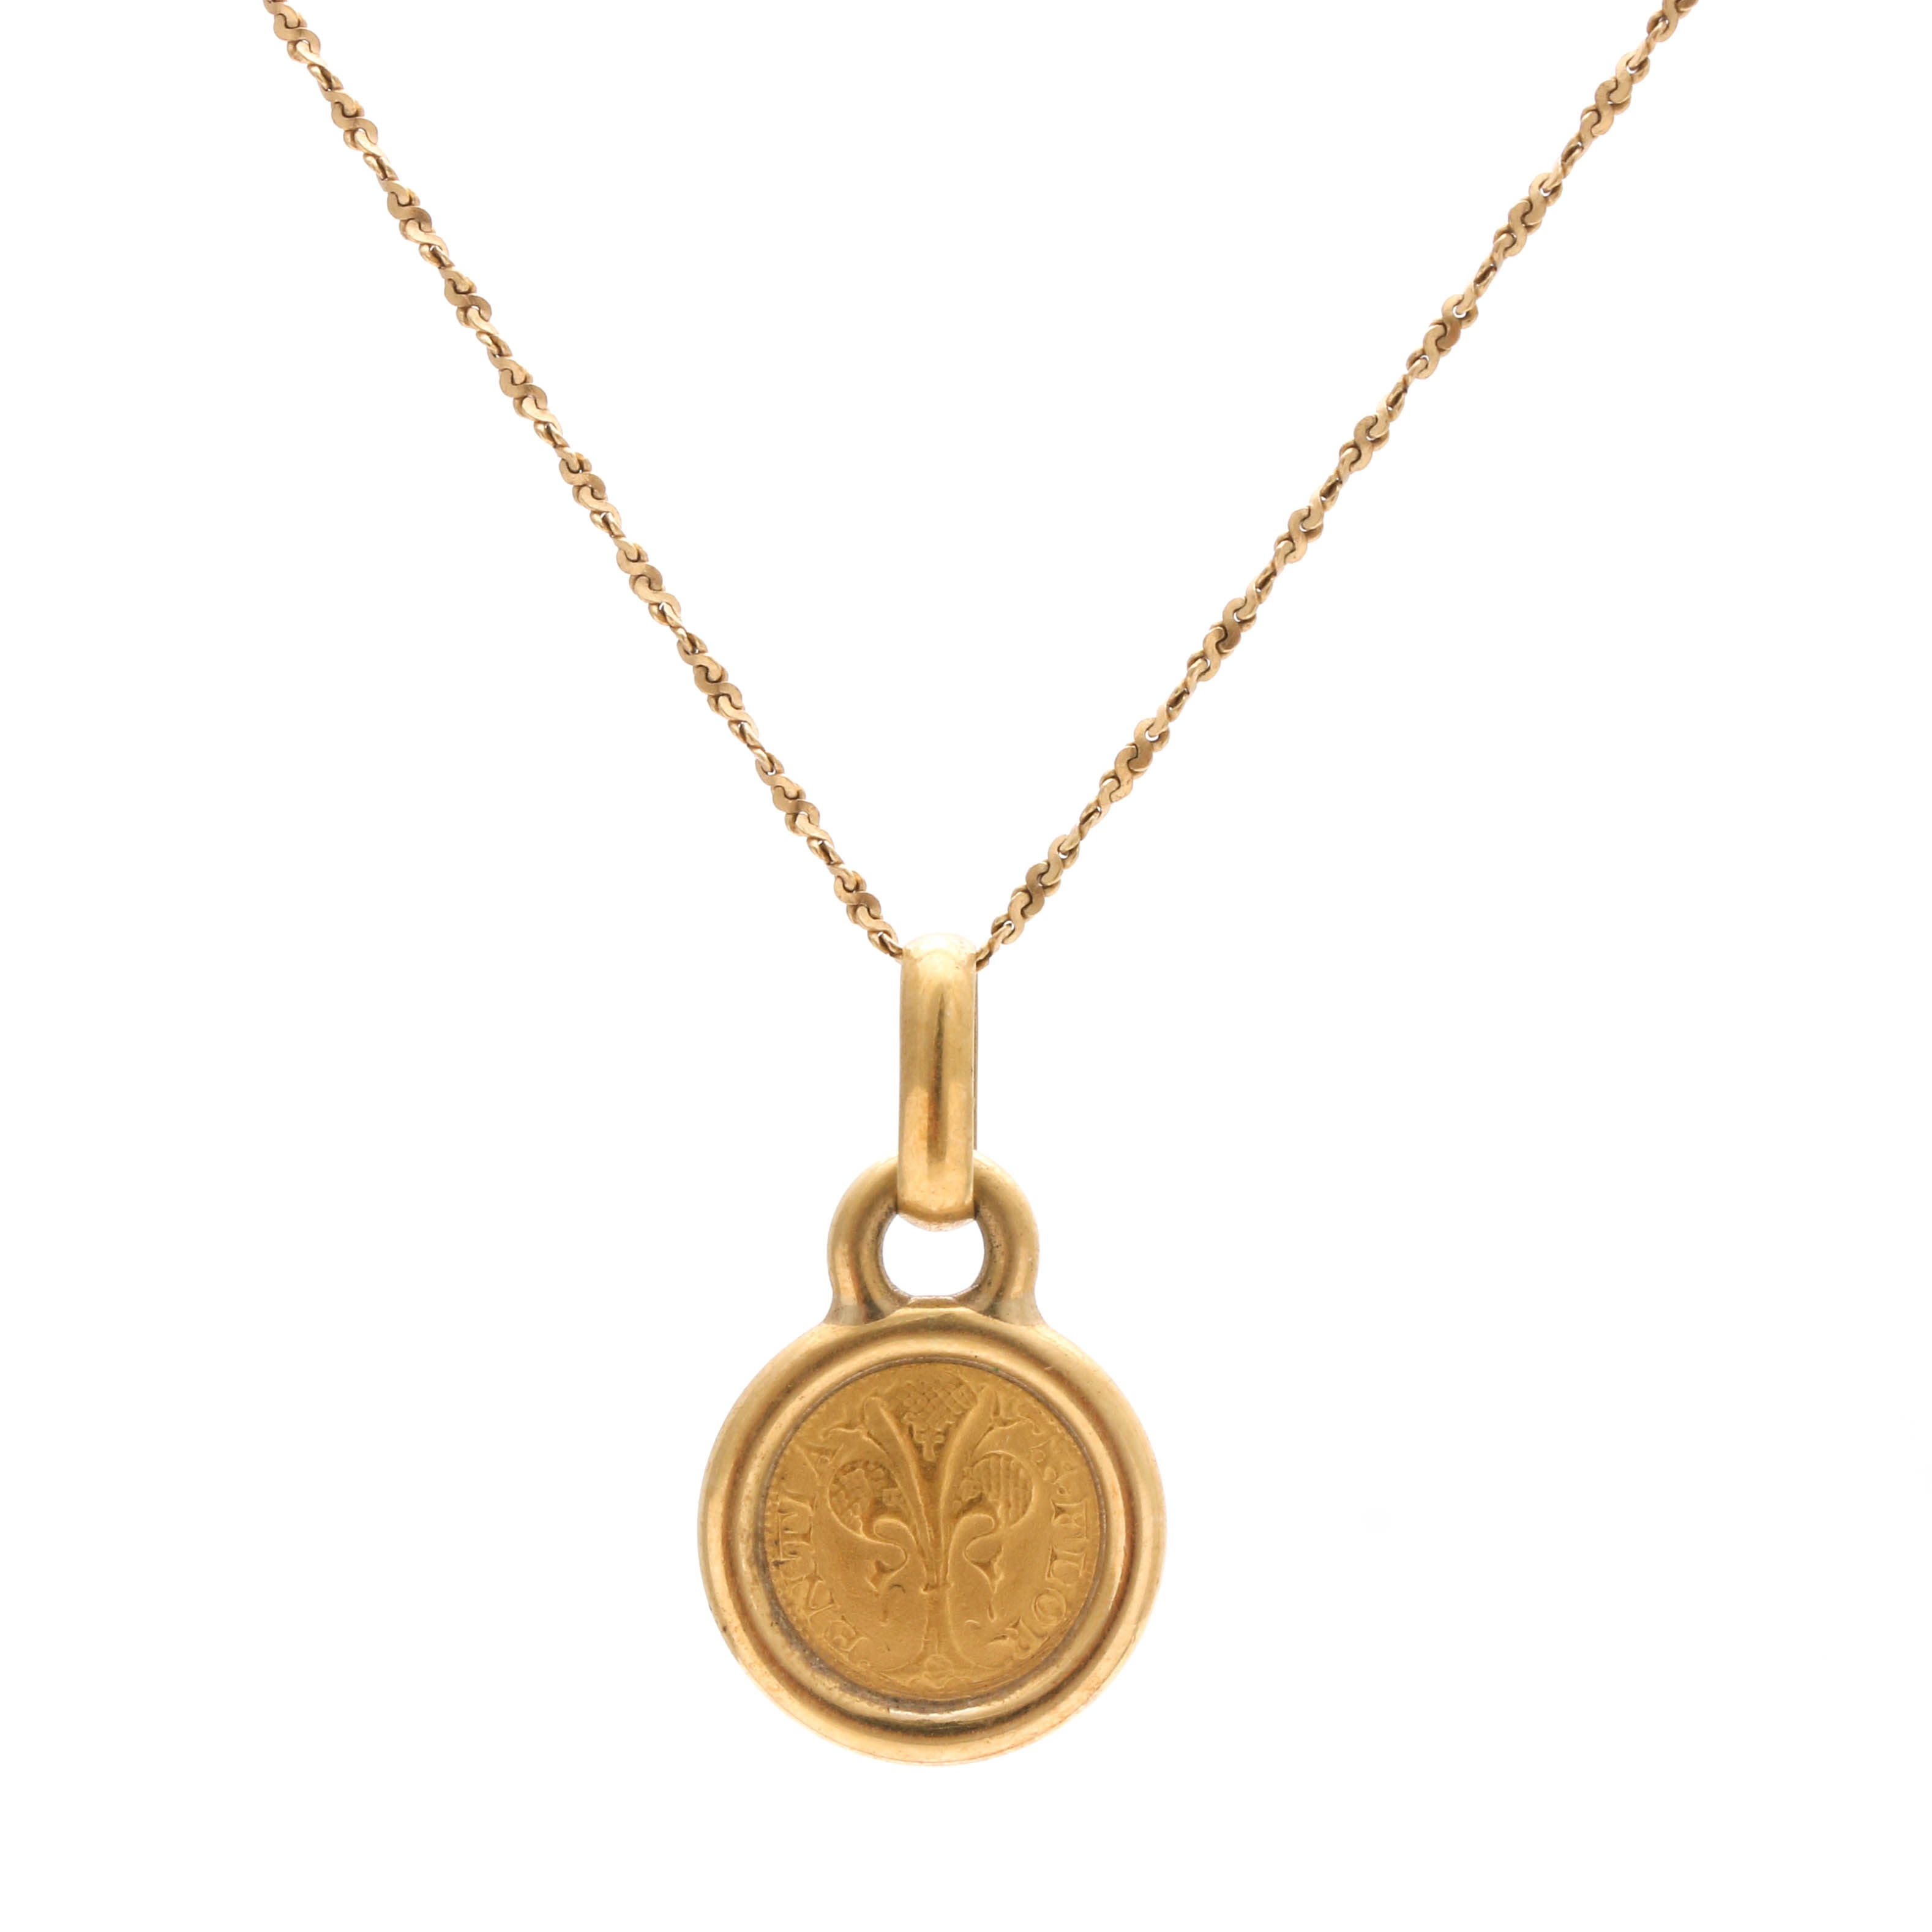 18K Yellow Gold Florentine Coin Necklace, Made in Italy